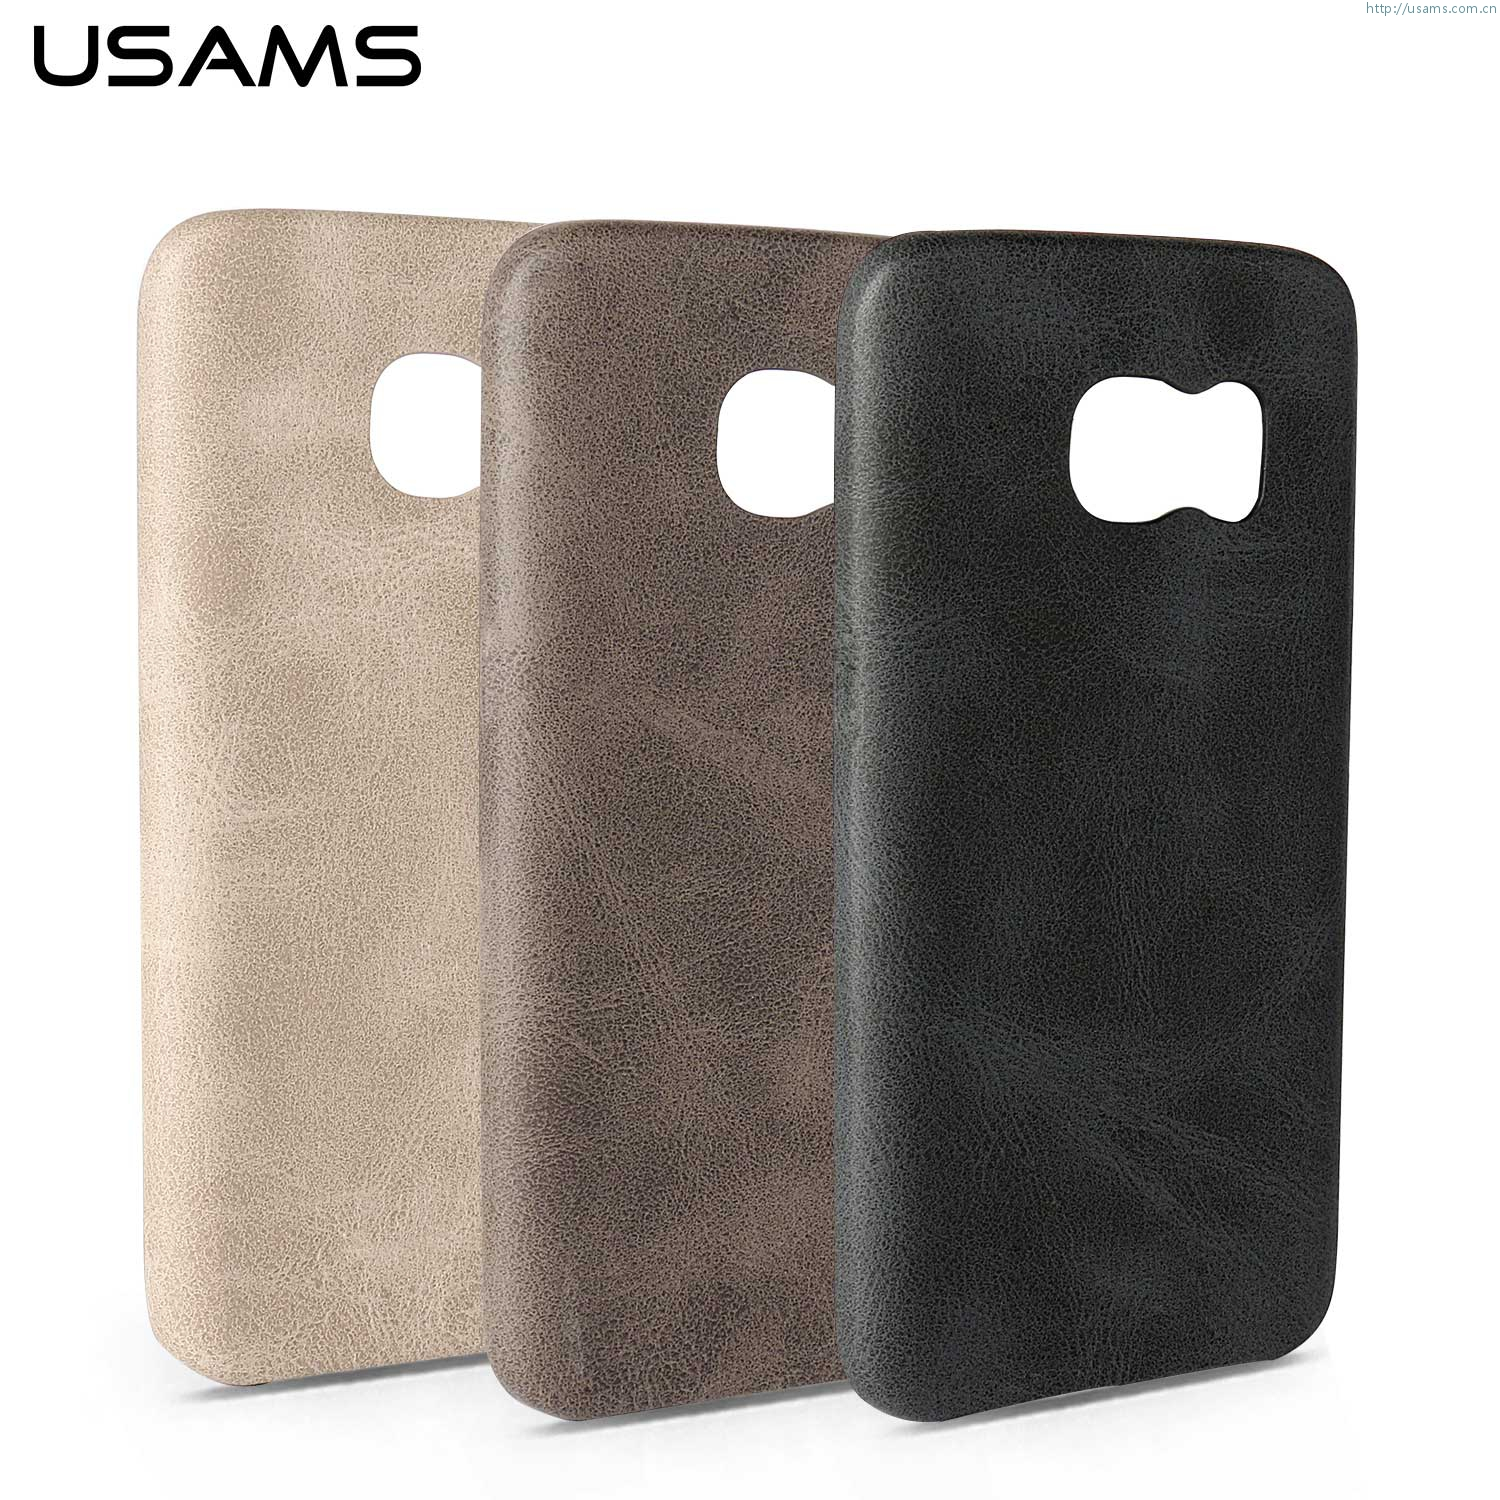 buy popular 03159 bb8d3 Samsung Galaxy S7 Bob Series Soft Case Back Cover Ultra Thin Soft PU  Leather Case Purchased